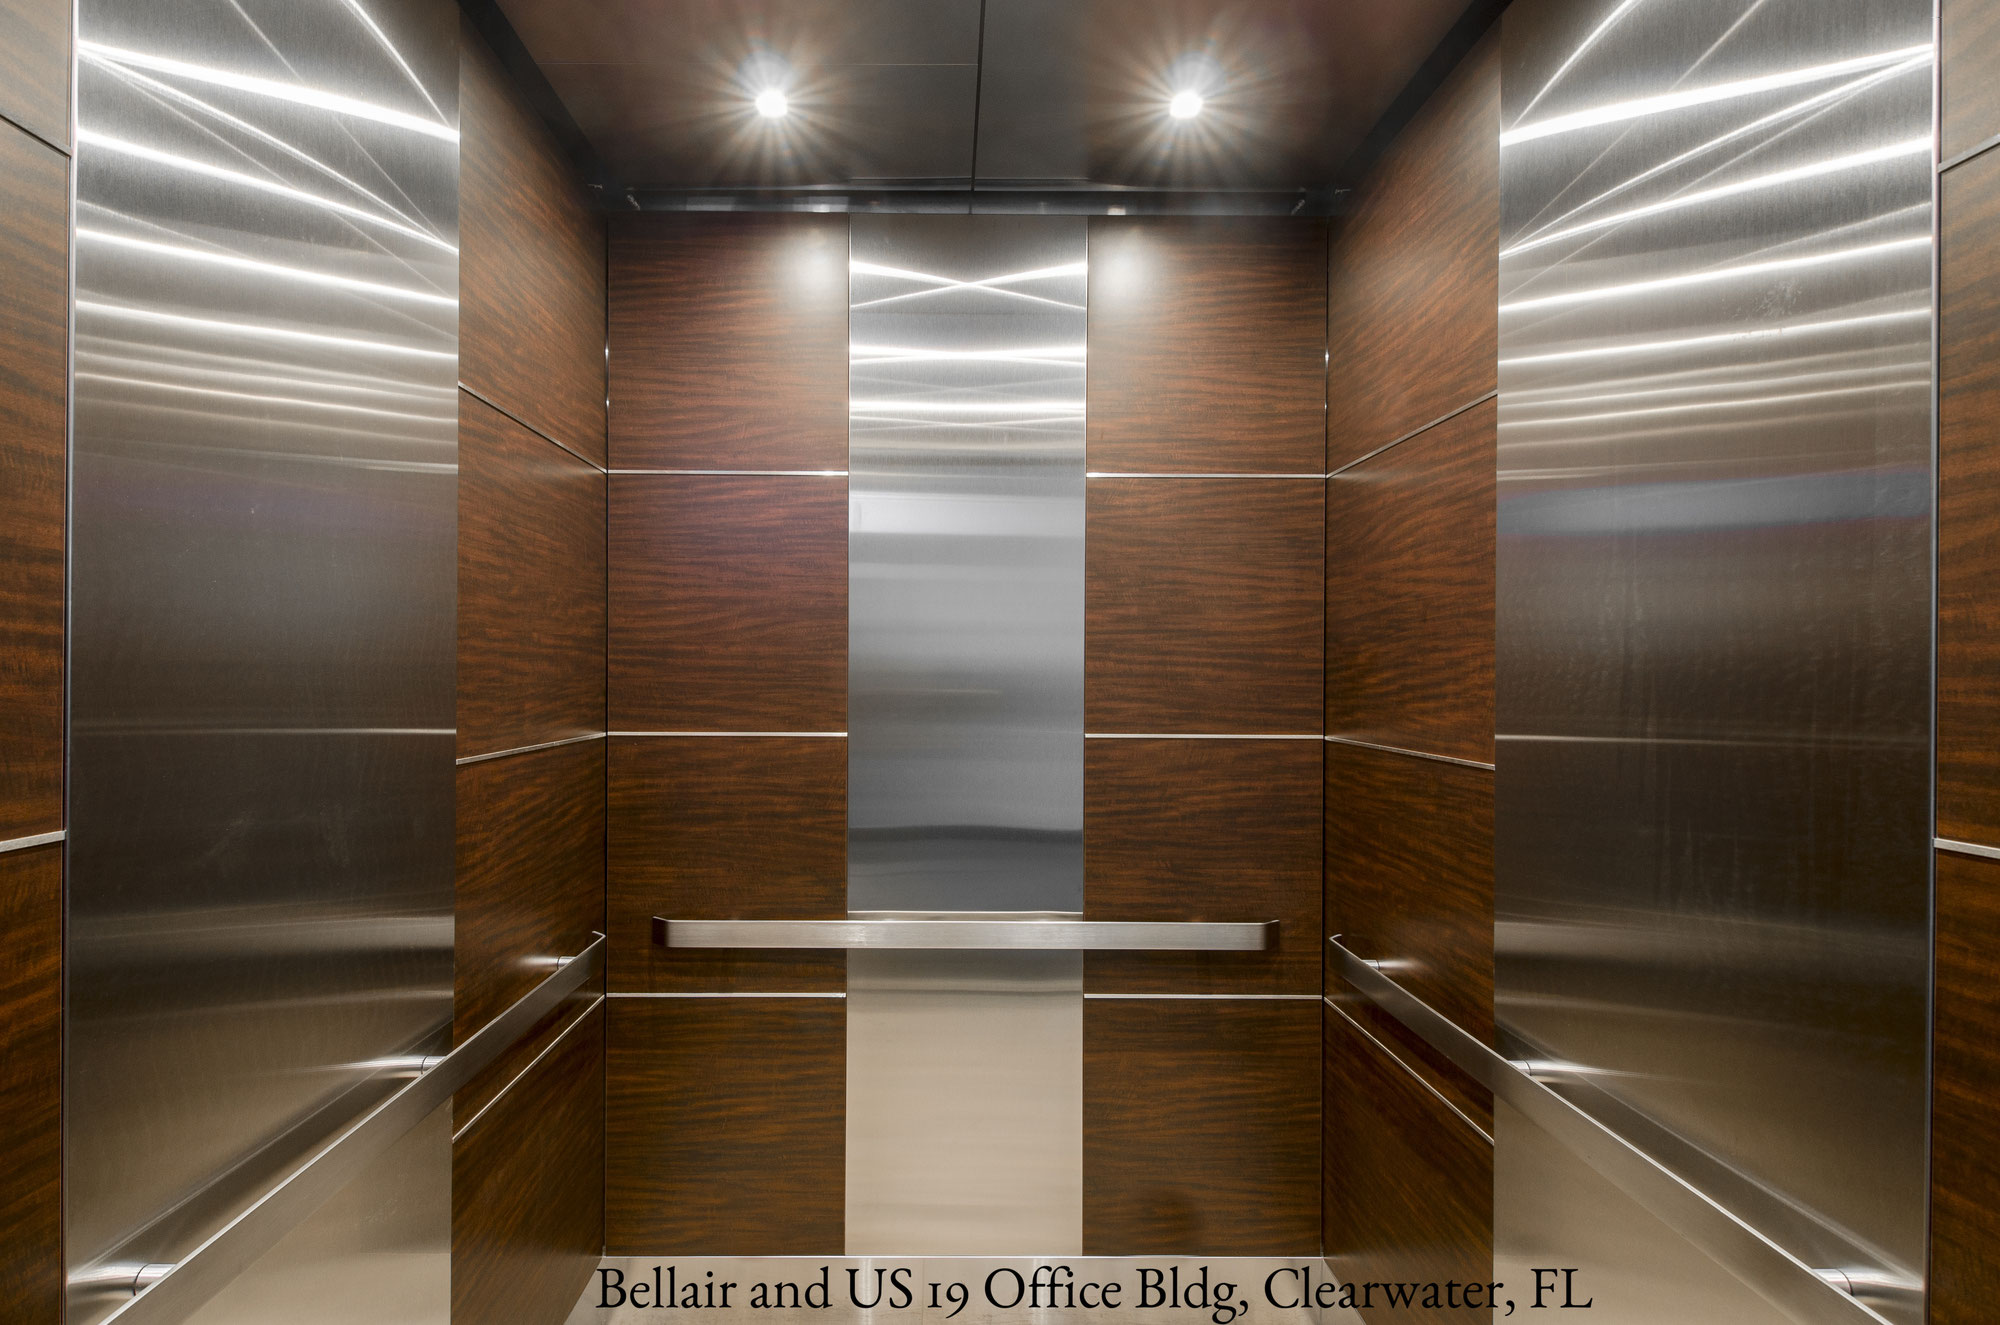 Services For Remodeling Refinishing Or Updating Your Elevator Interior Ncis Elevator Cab Remodel